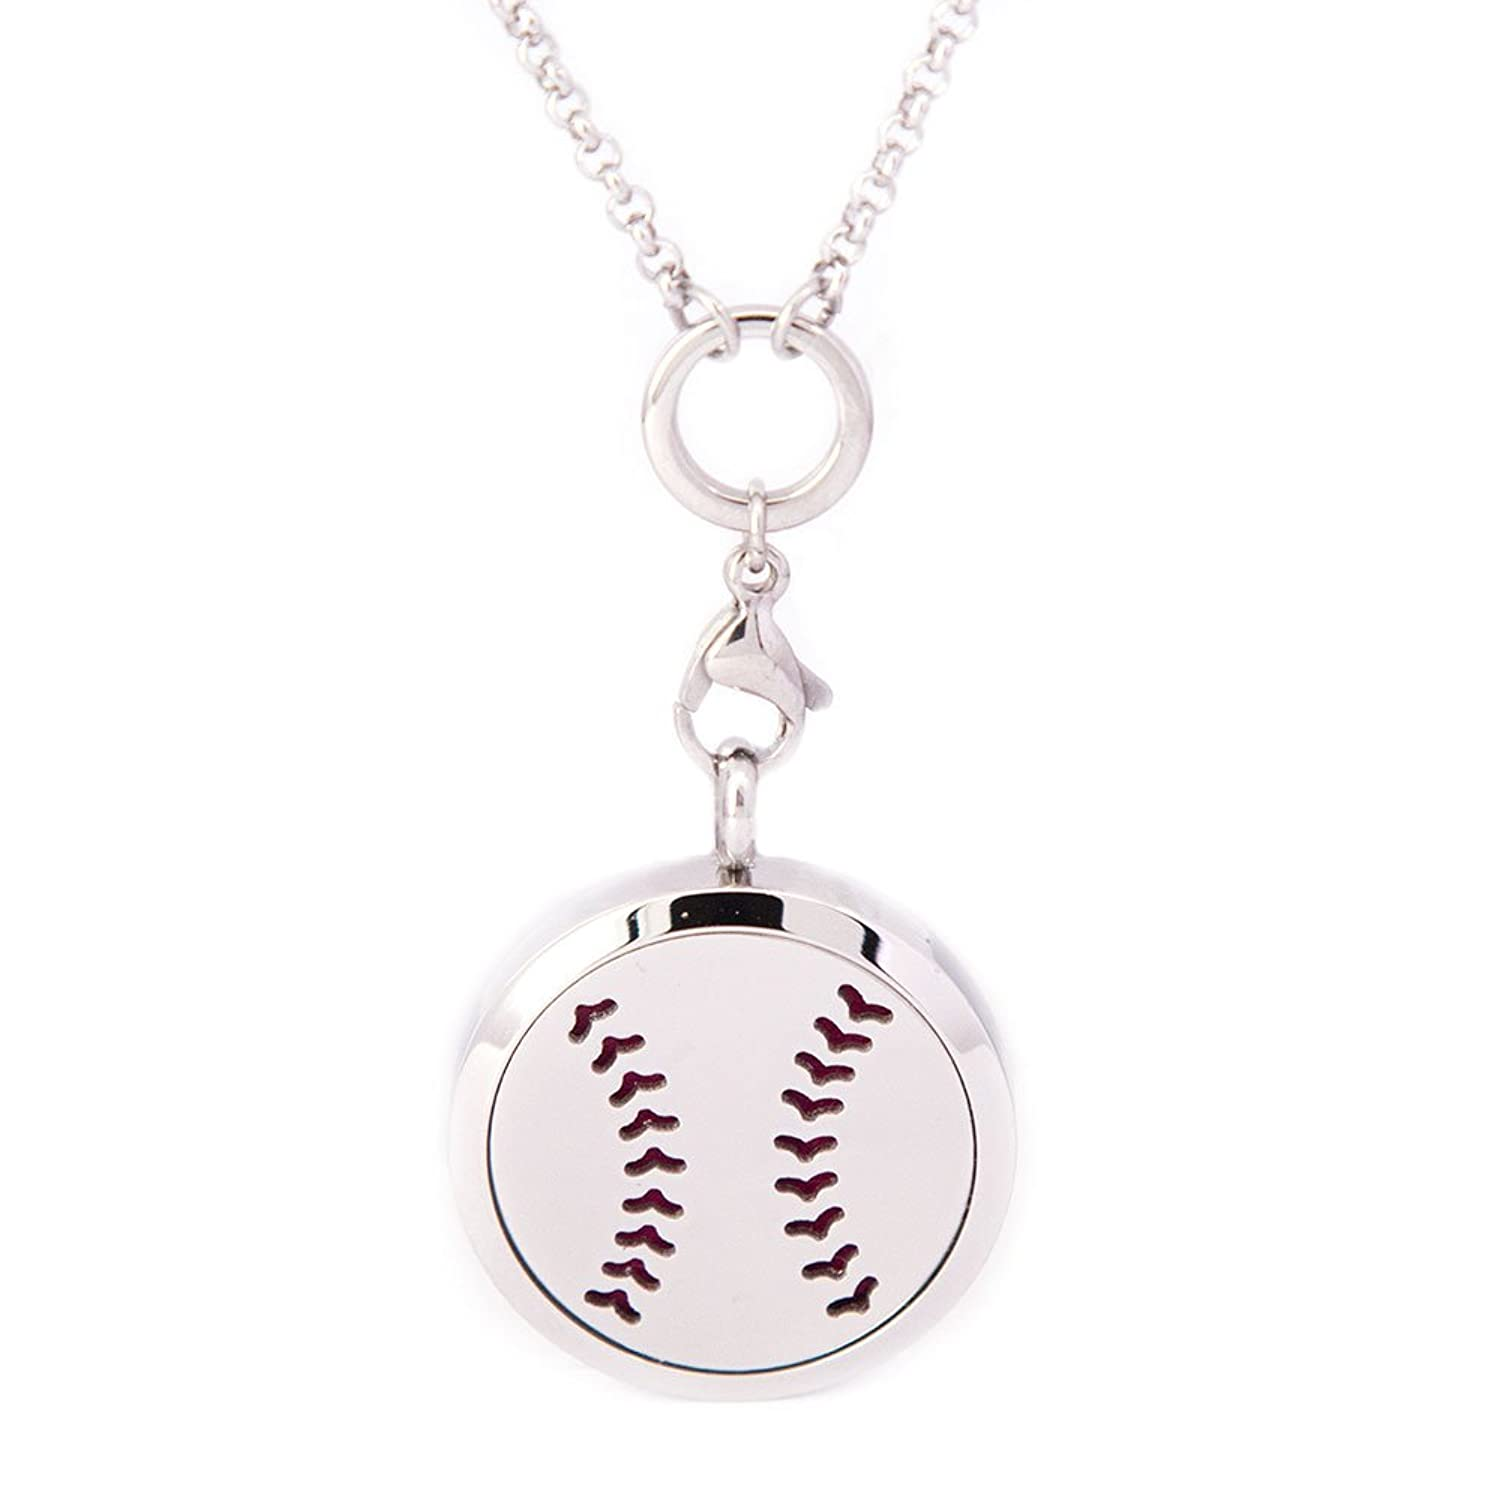 necklace spb jewelry products pendant forgiven phil baseball